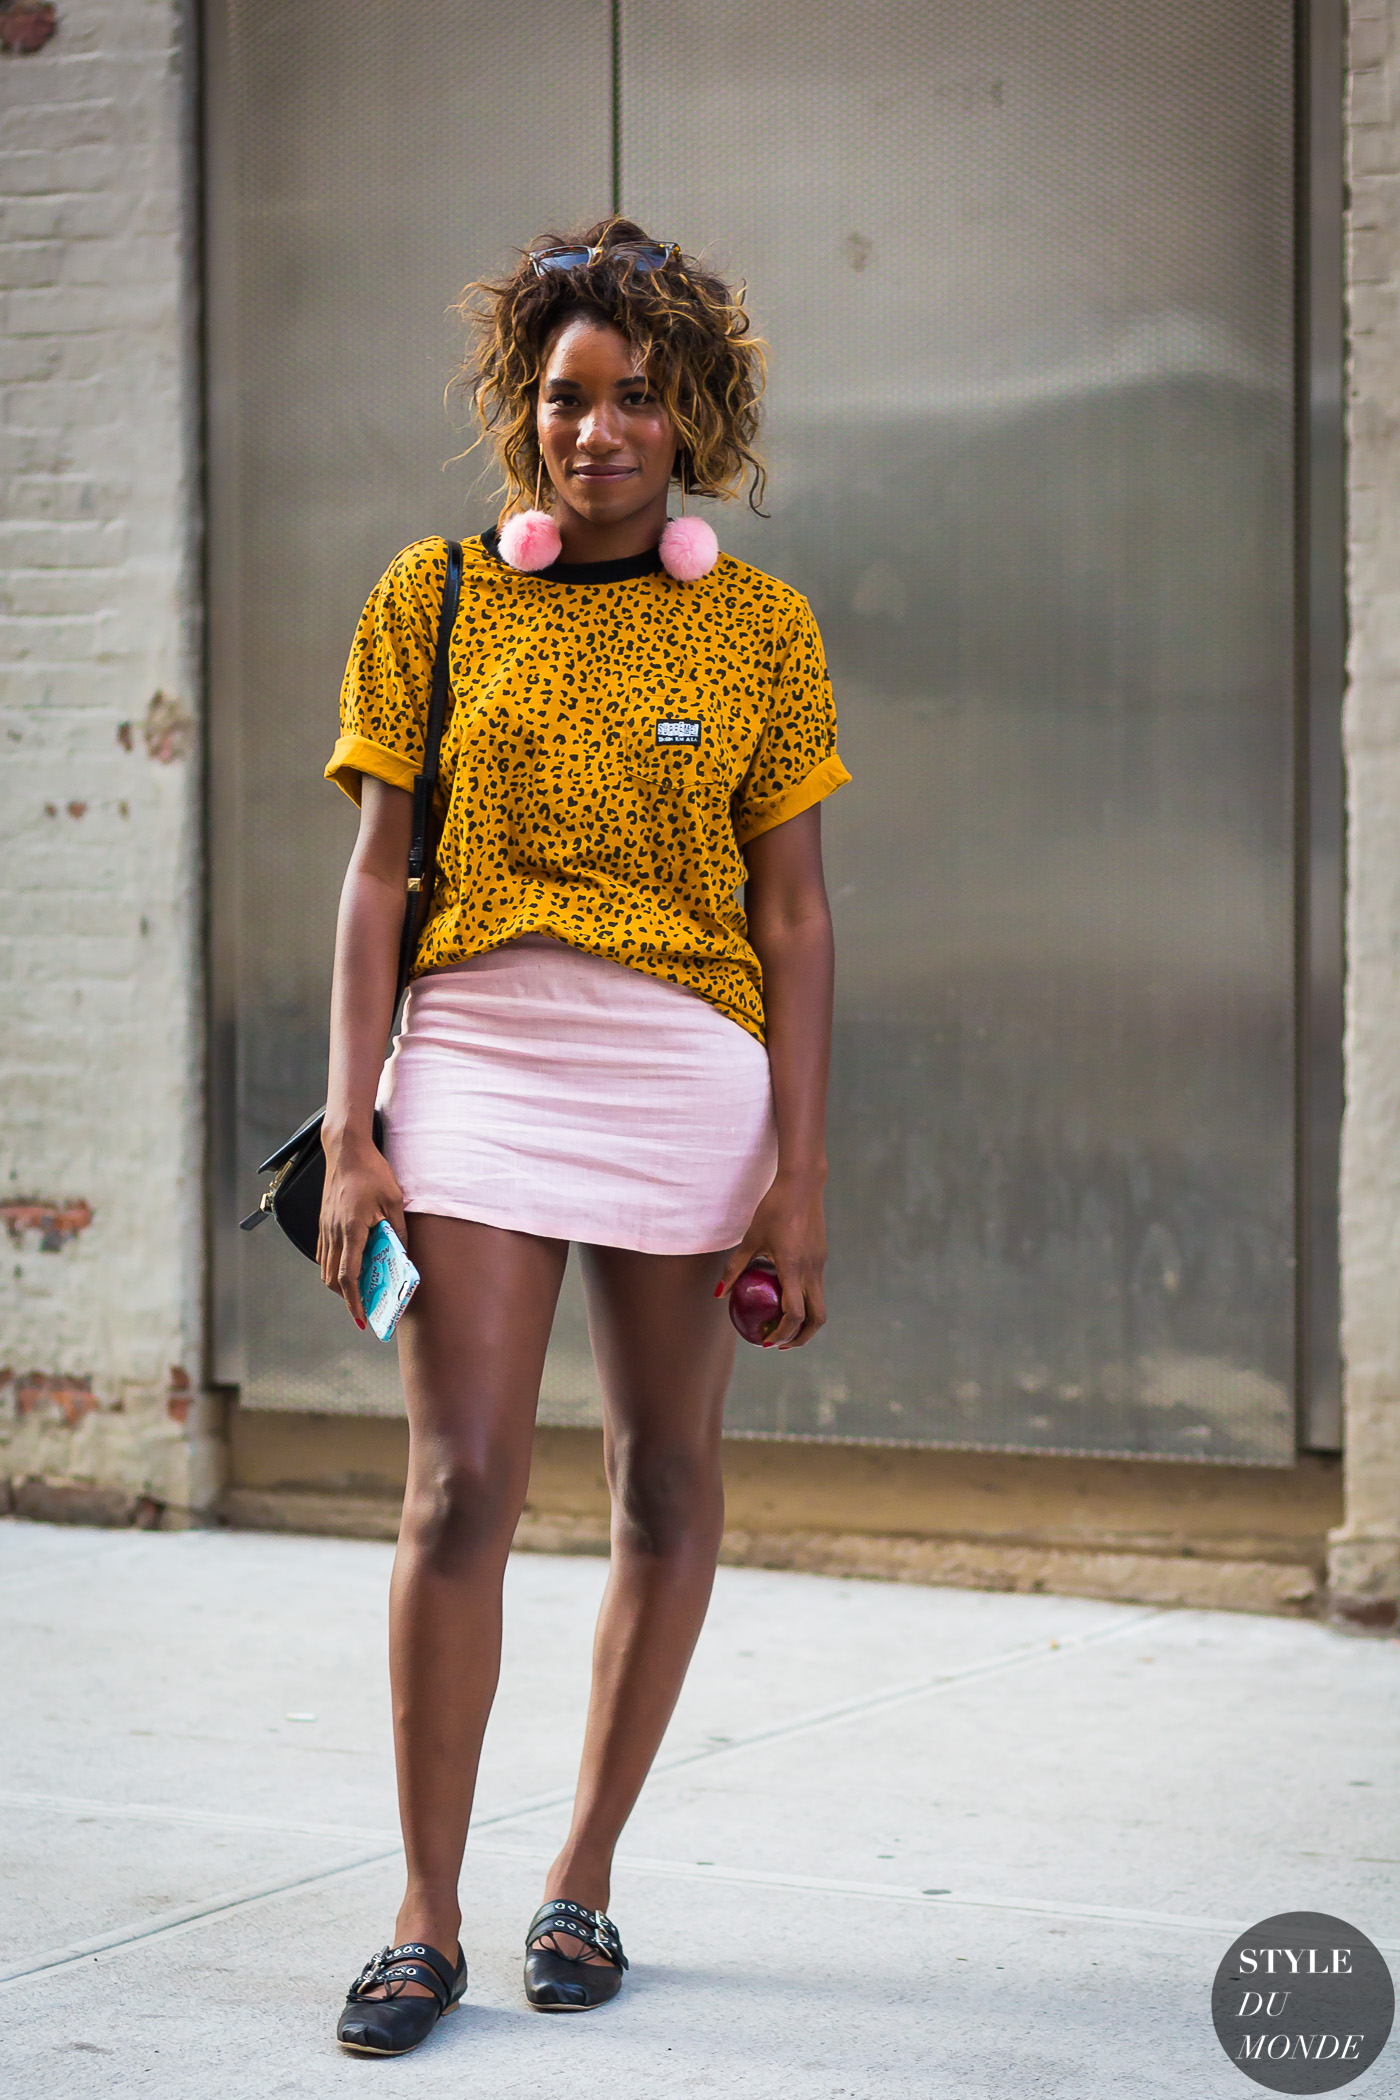 Danielle Prescod by STYLEDUMONDE Street Style Fashion Photography